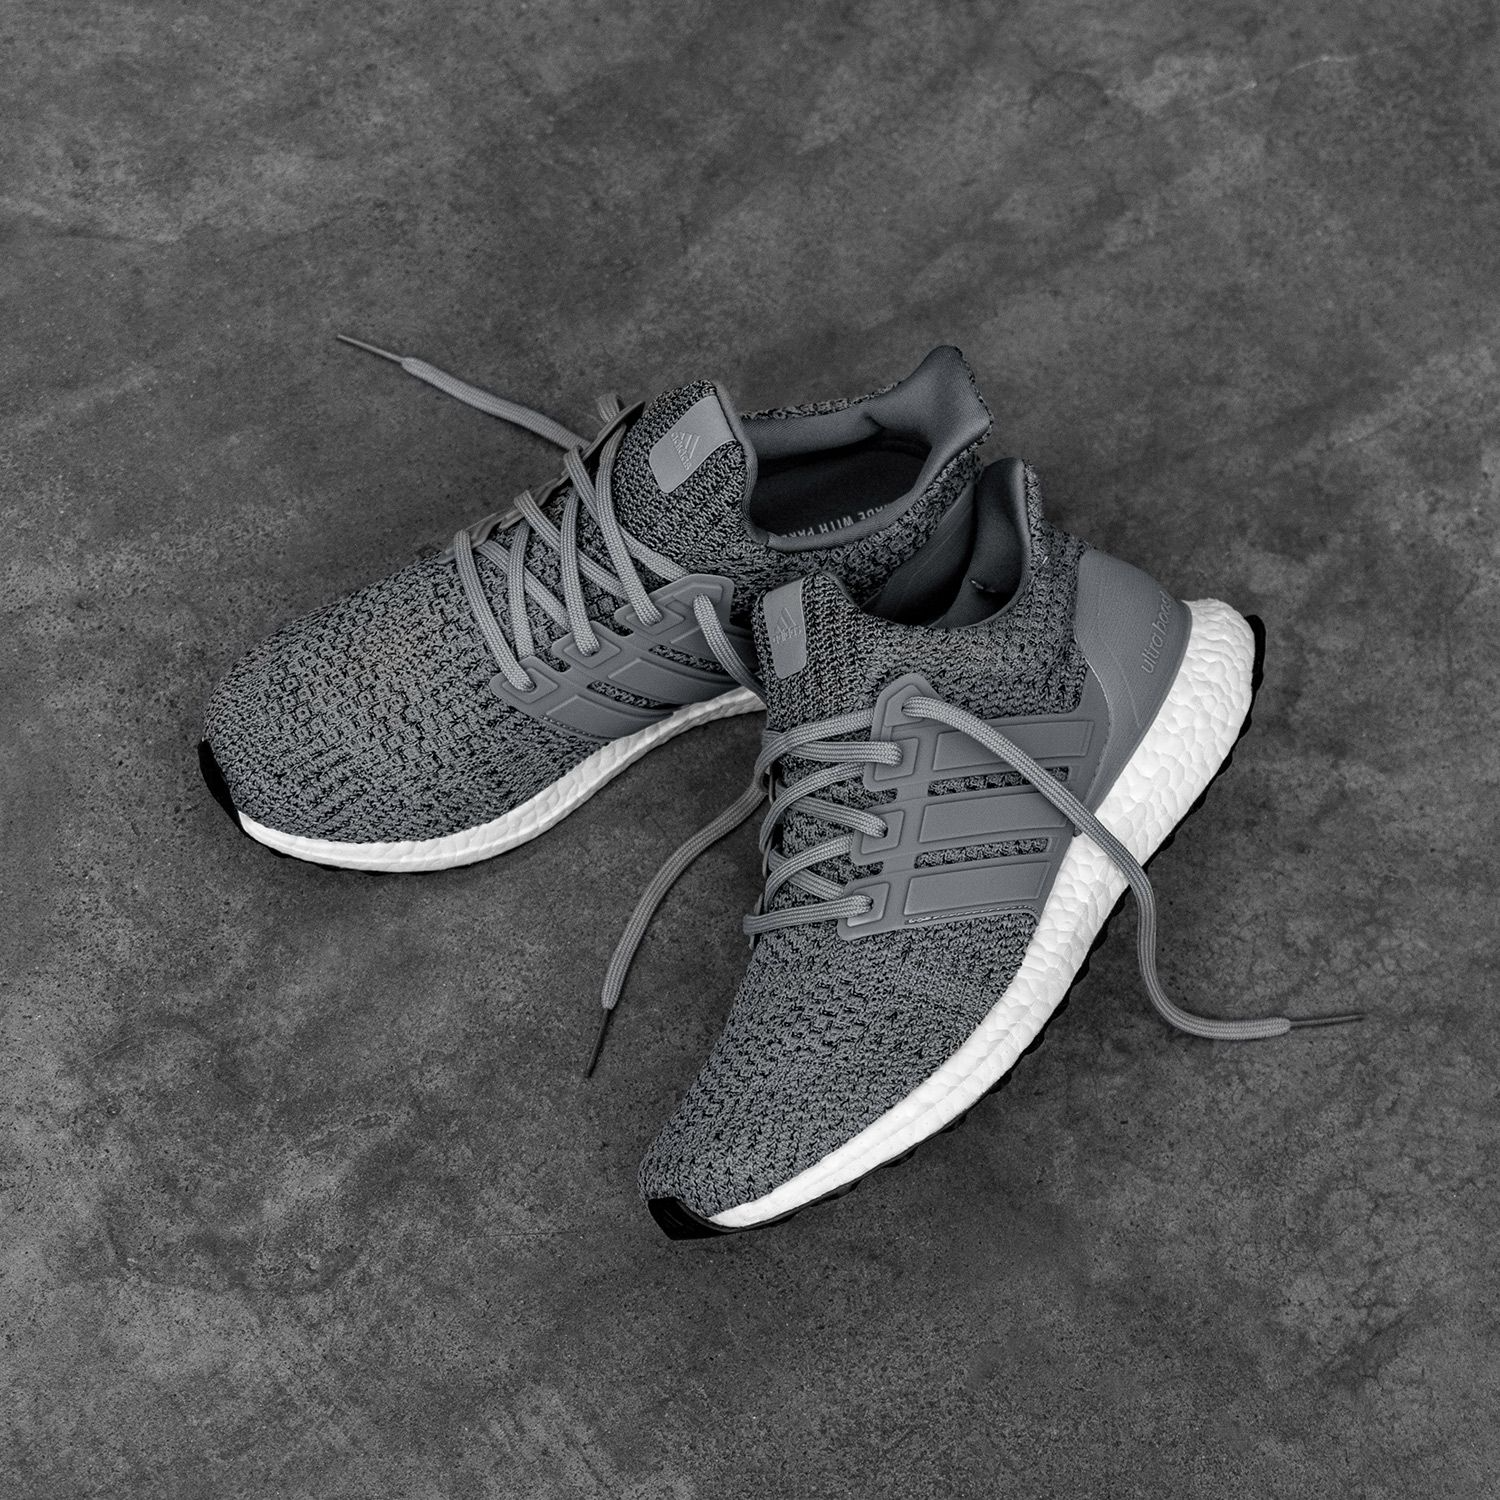 """adidas UltraBOOST 4.0 DNA """"Wool Grey"""": Sale Price: $135 (Retail $180)  – FREE SHIPPING – use code:  – GRAD25 –  at checkout"""